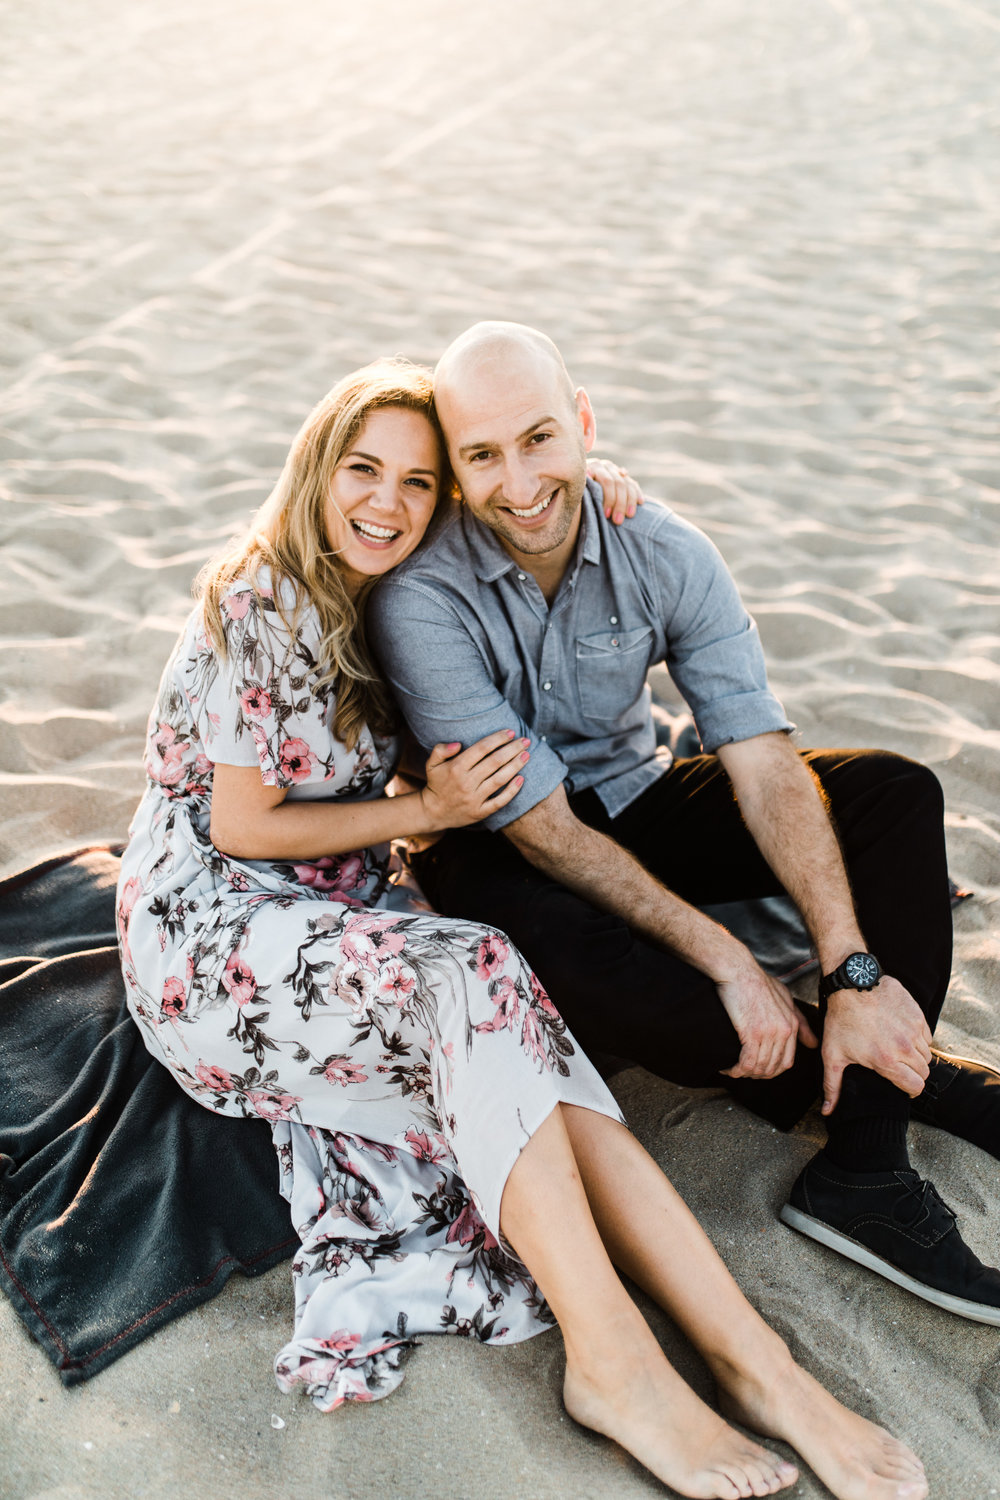 Koleta&Greg-Pacific-City-Huntington-Beach-Engagement-Photos-Clarisse-Rae-Southern-California-Wedding-Photographer_46